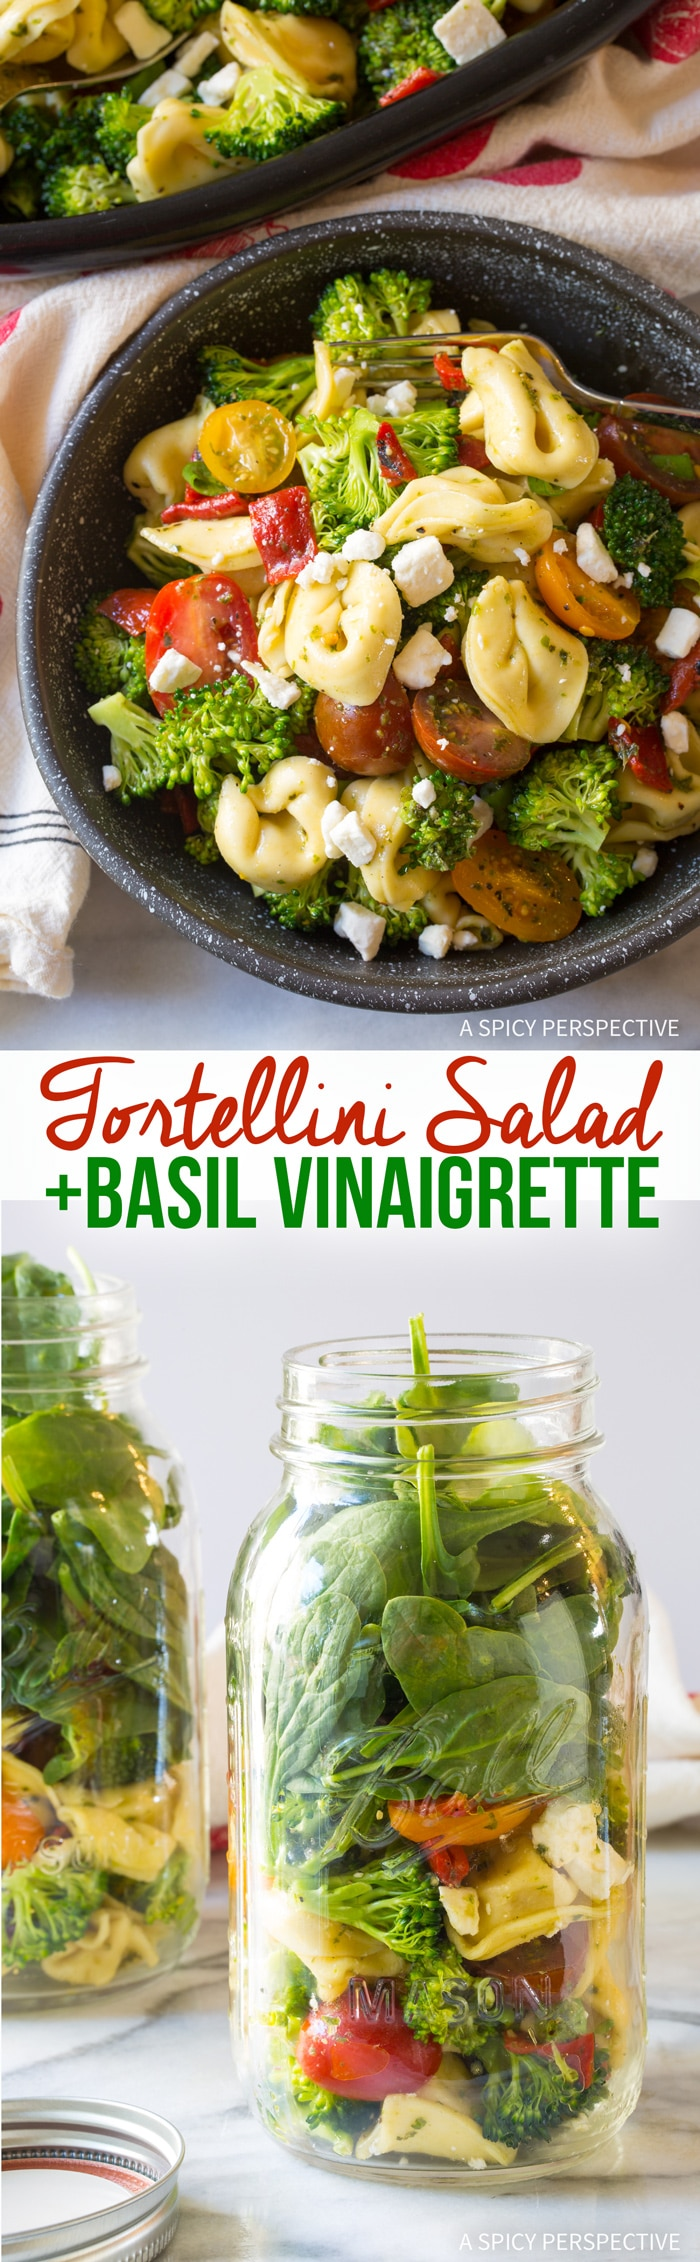 Cold Tortellini Salad with Basil Vinaigrette Recipe